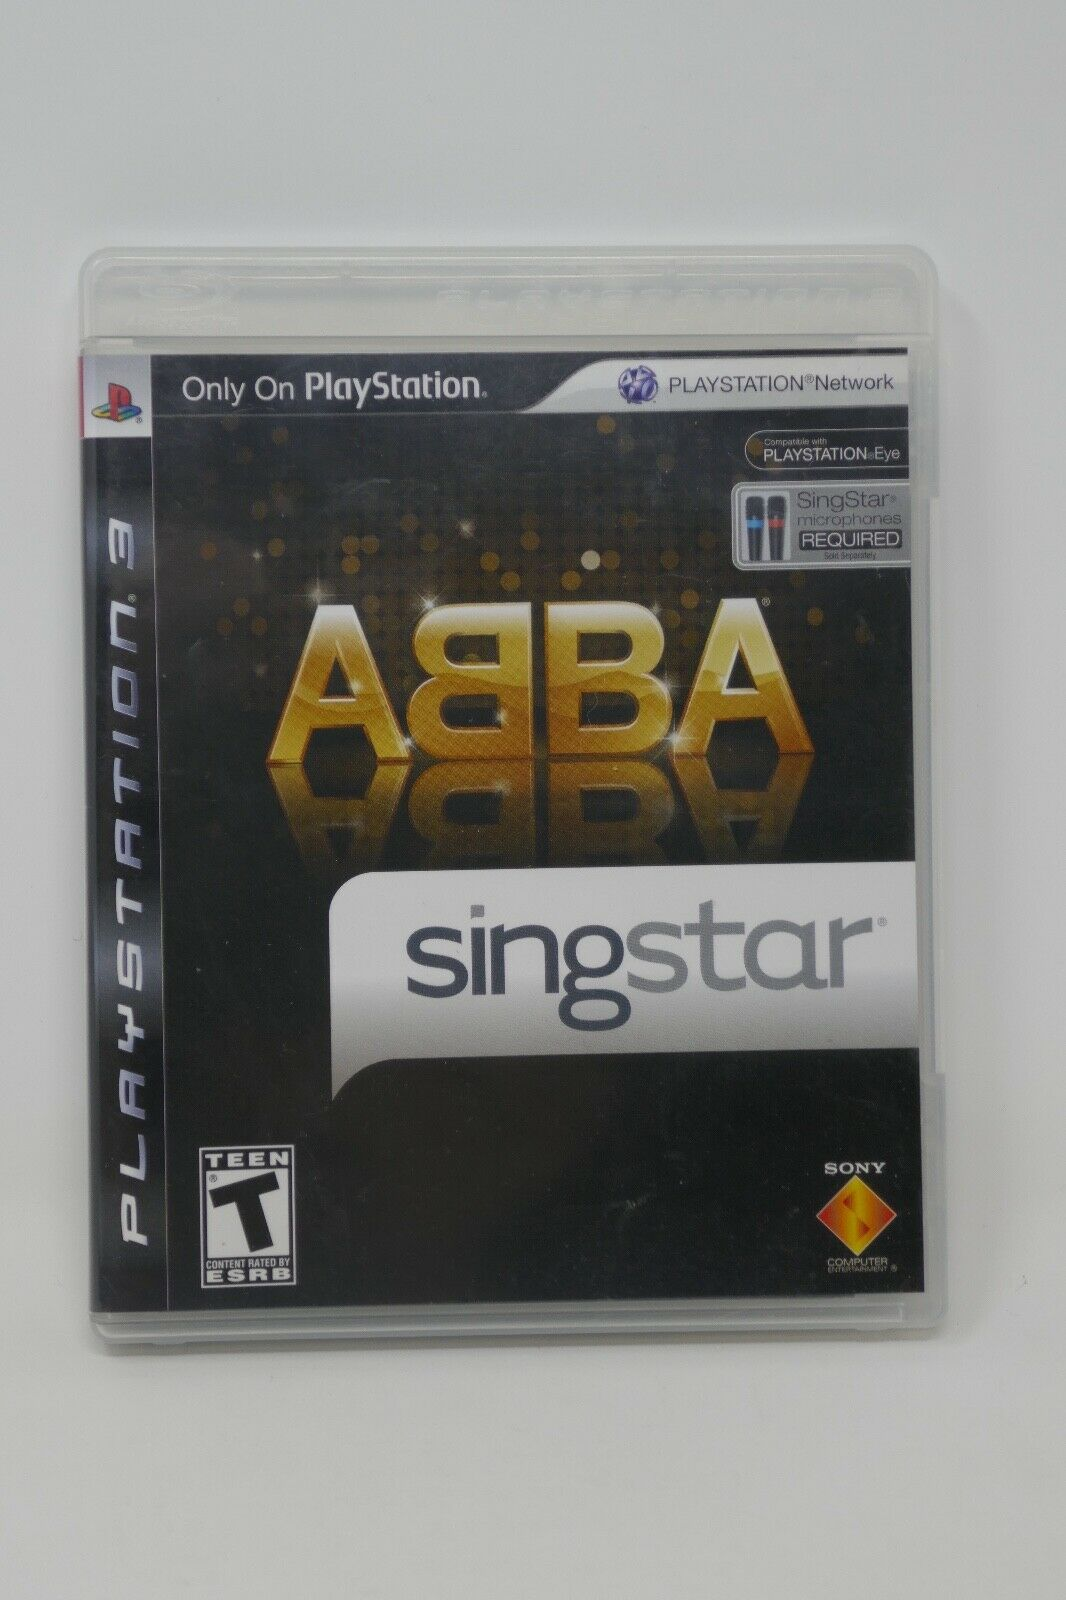 Primary image for SingStar ABBA (Sony PlayStation 3, 2008) COMPLETE